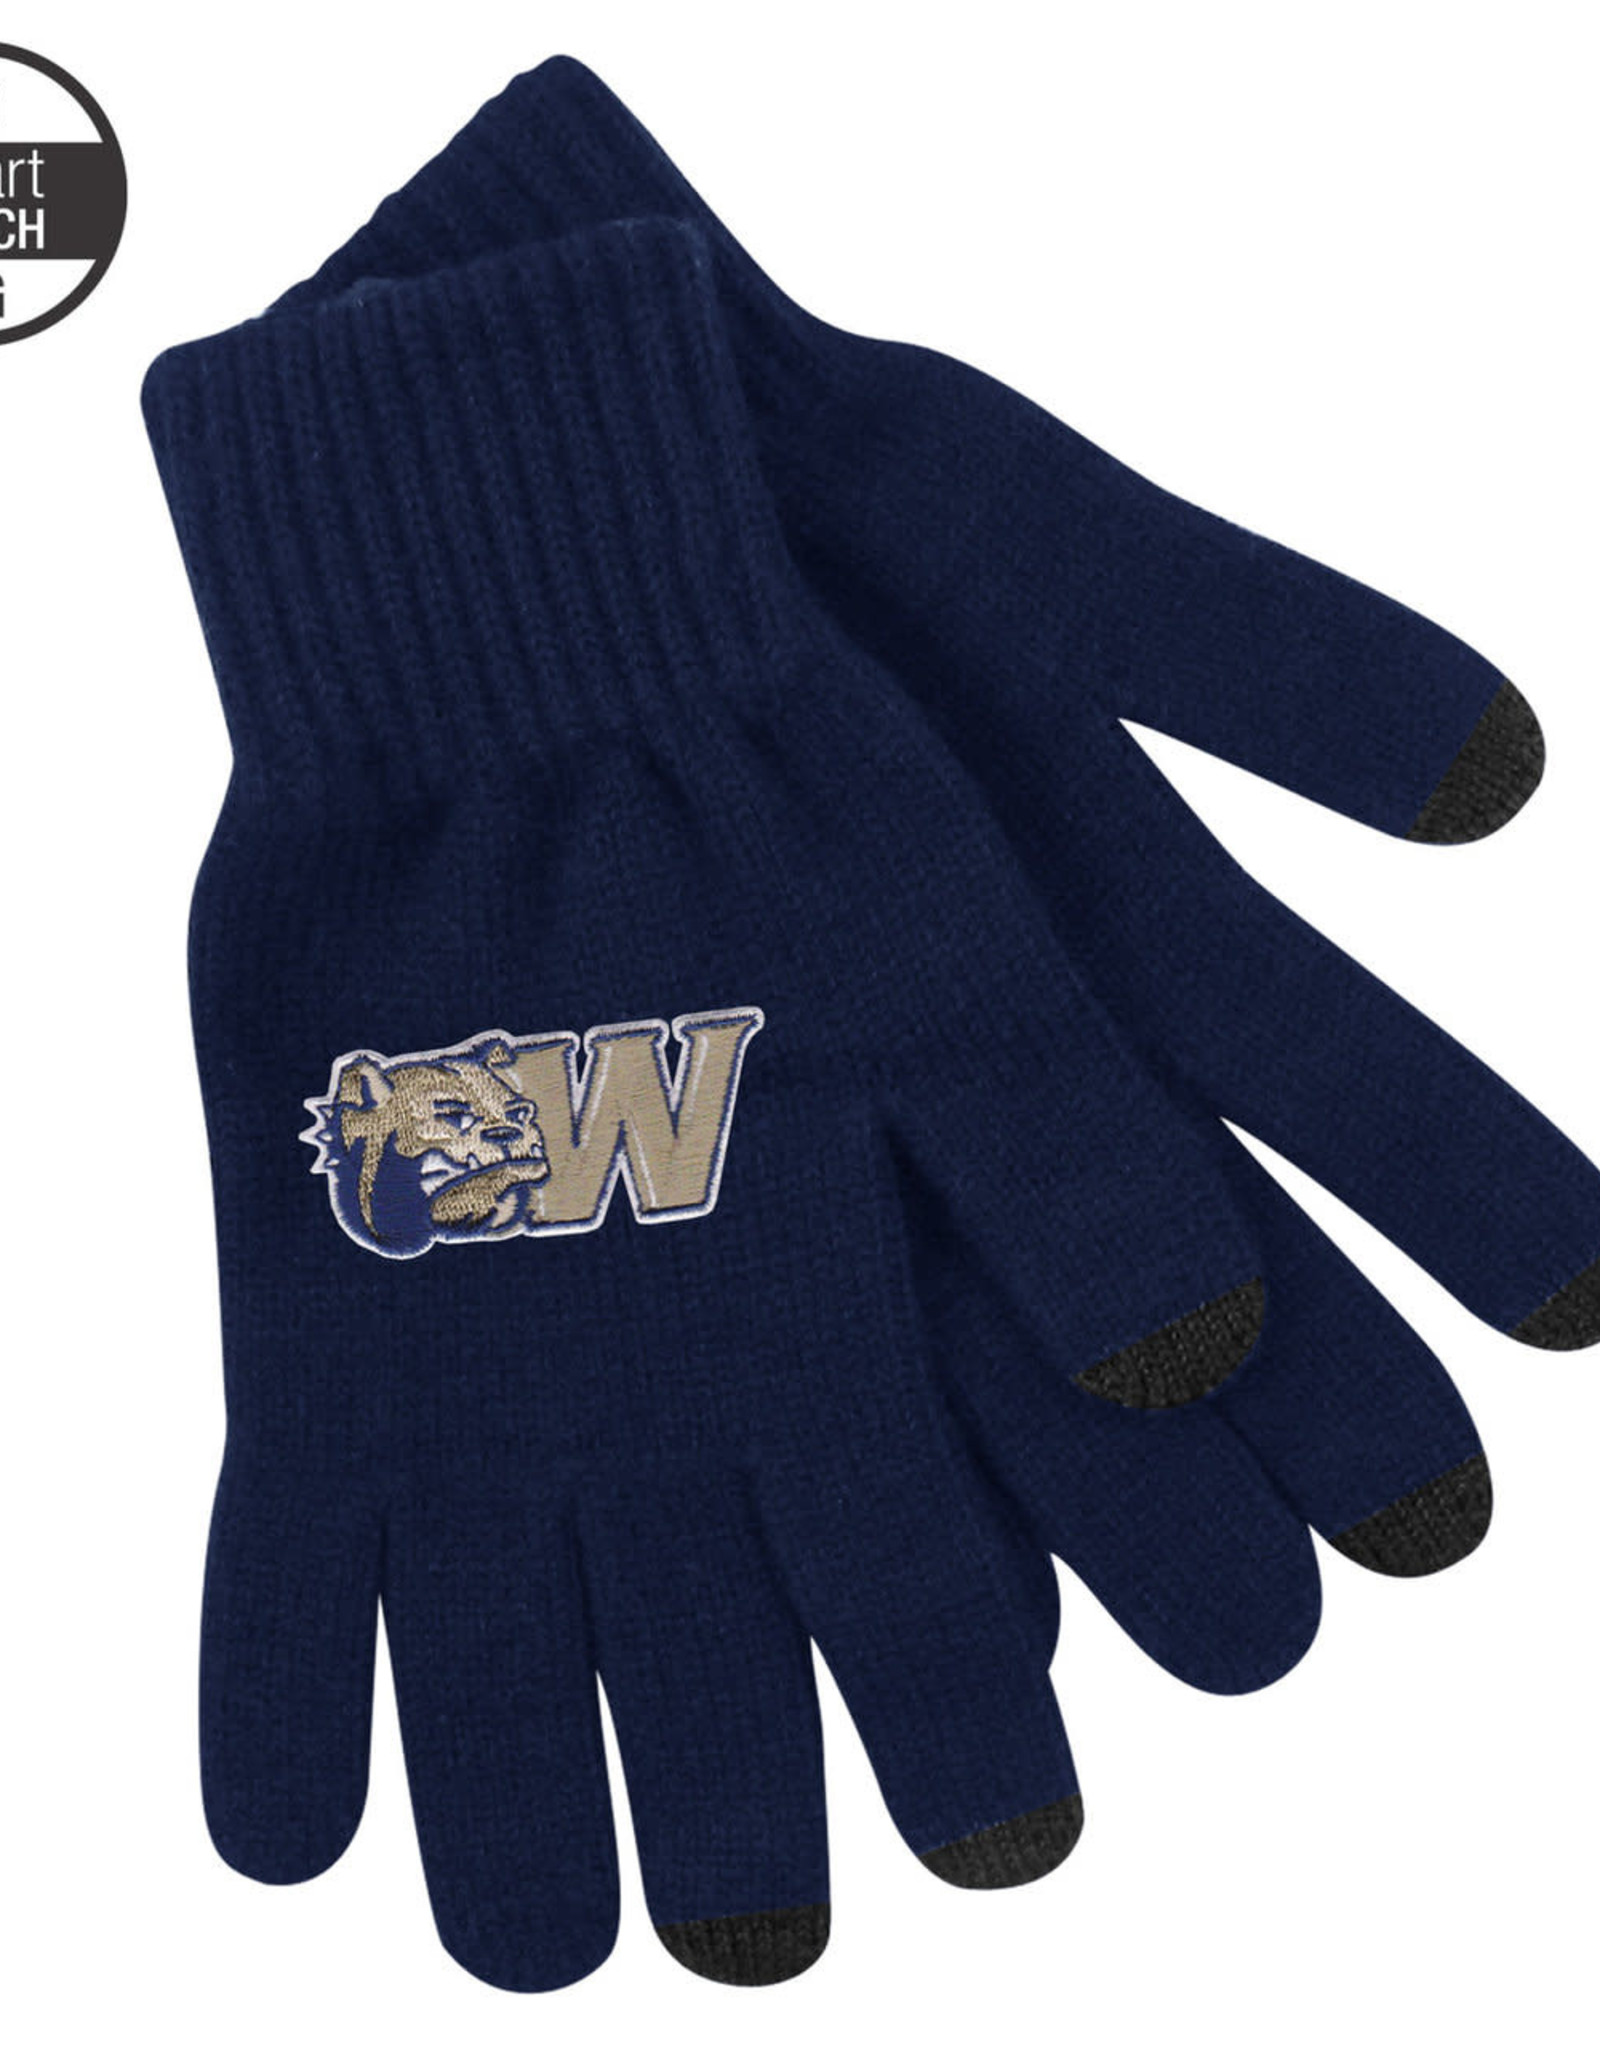 Deluxe Knit Texting Gloves